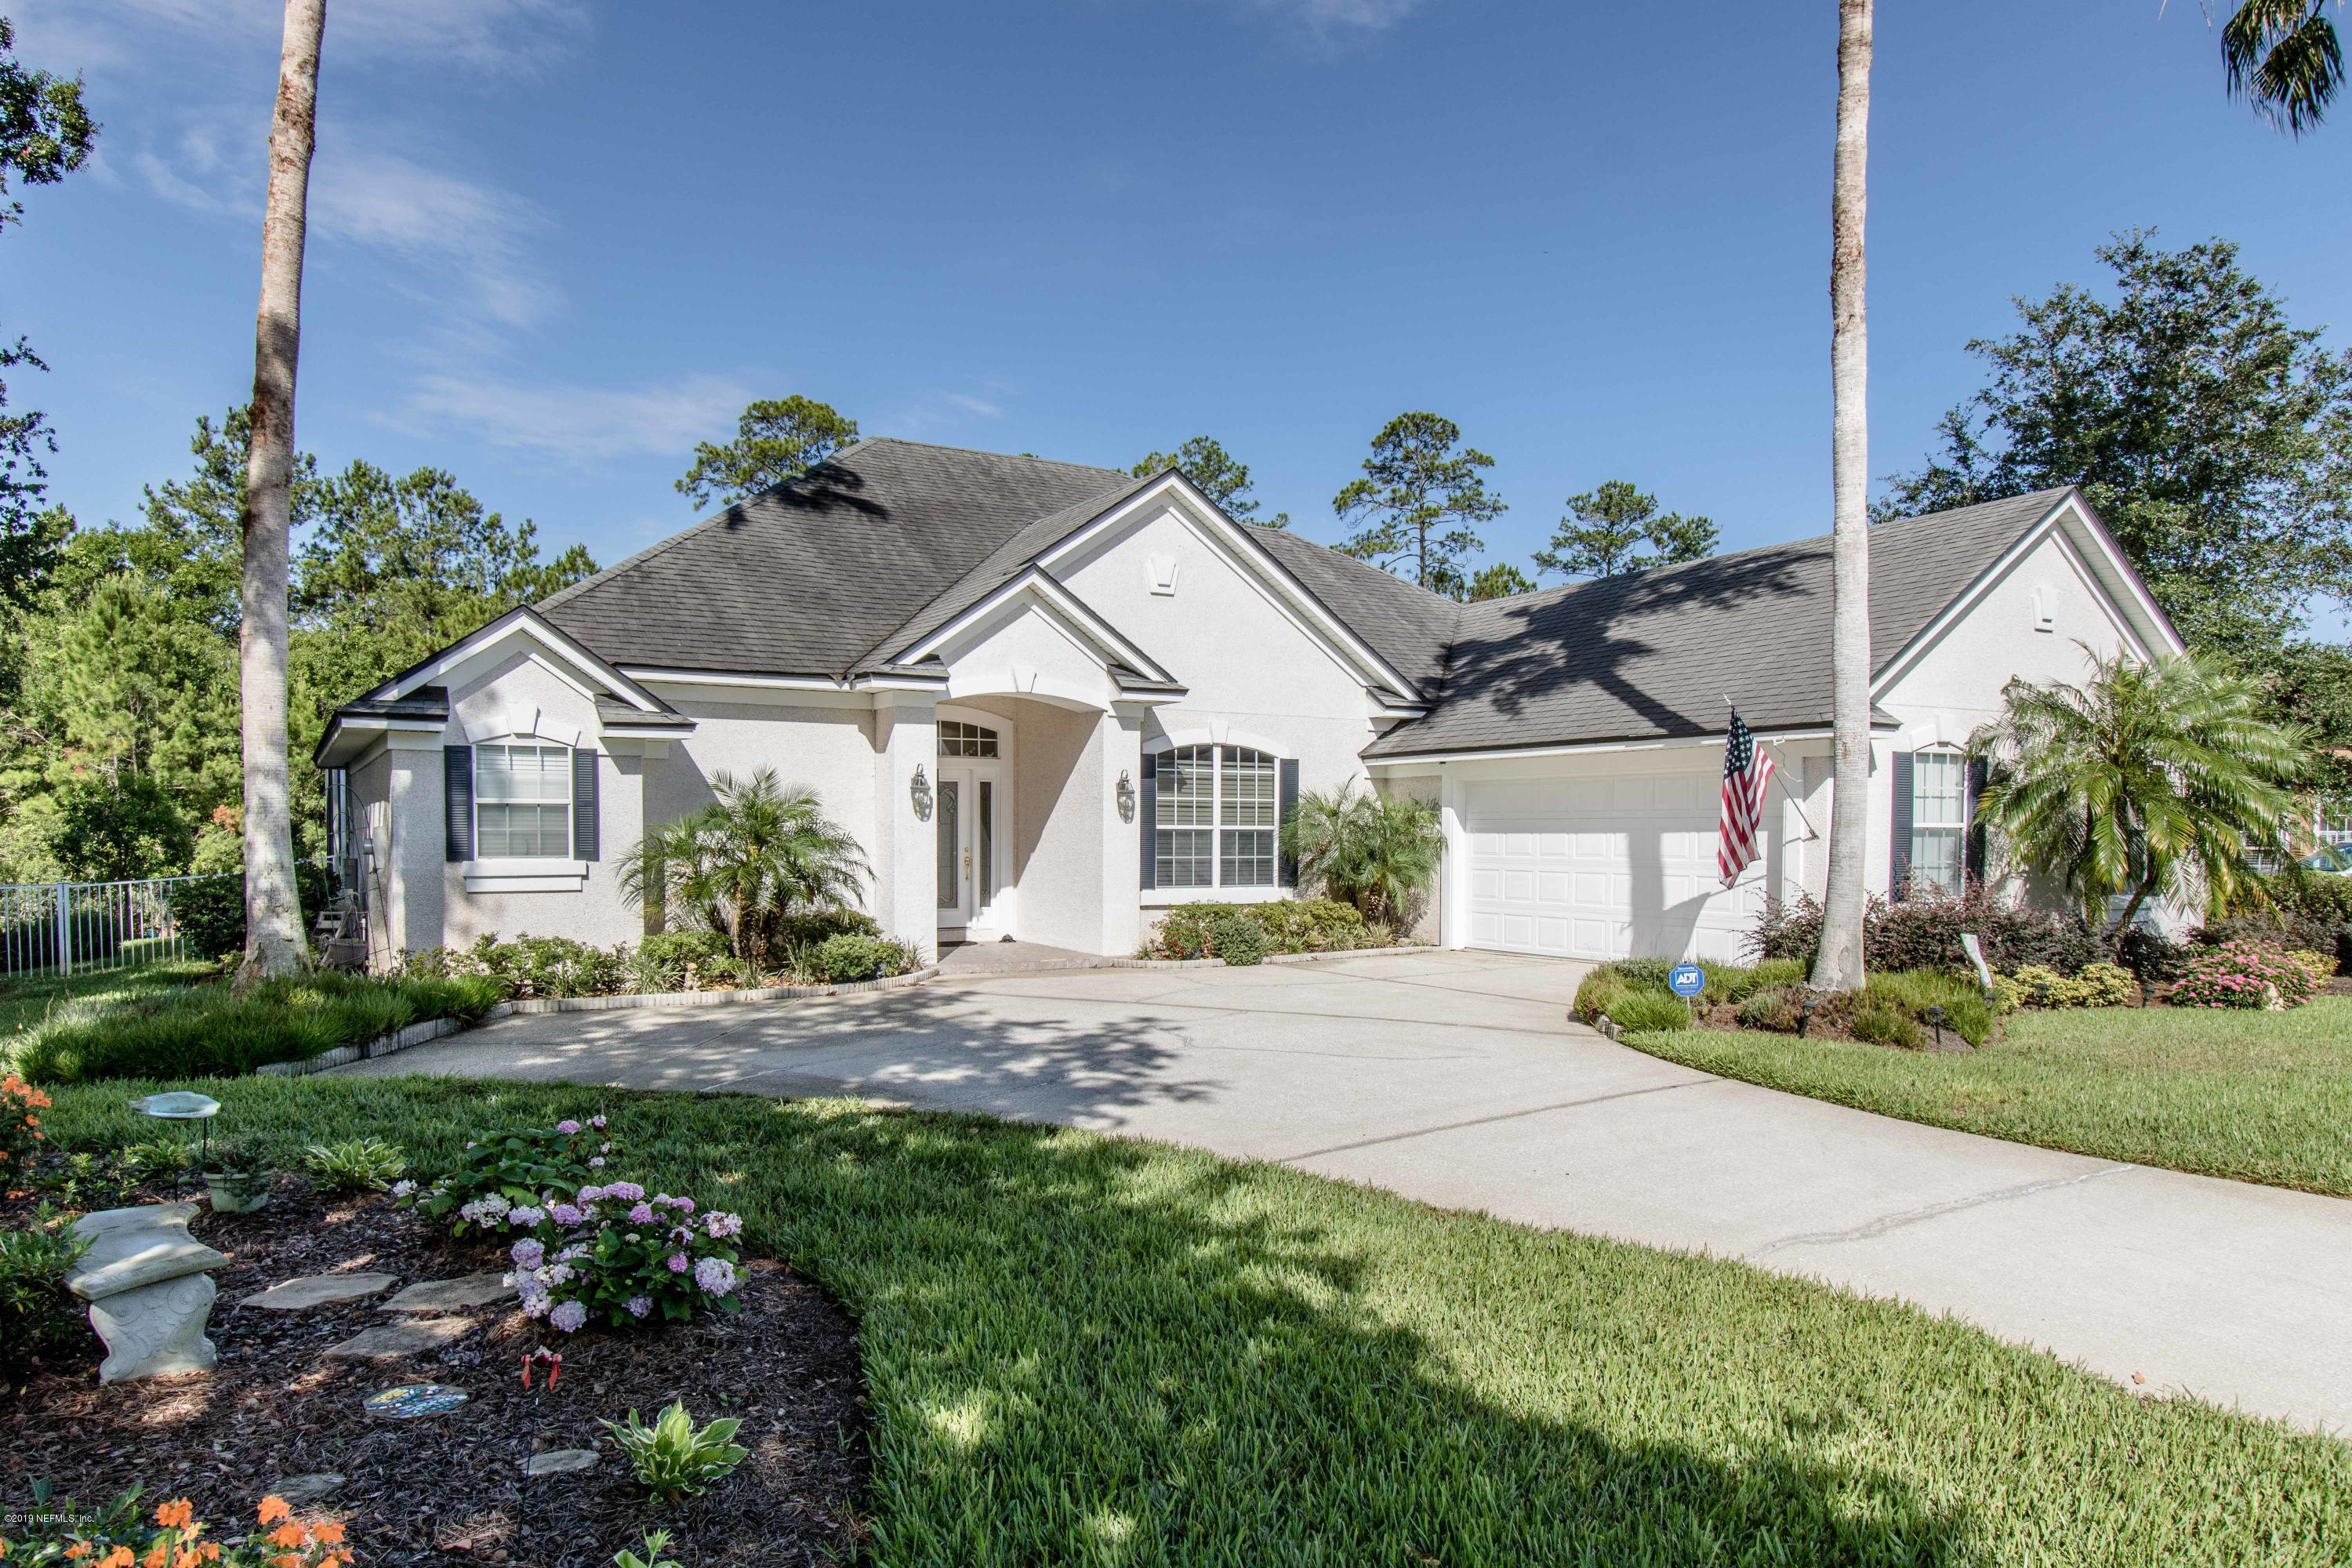 1704 COUNTRY WALK, FLEMING ISLAND, FLORIDA 32003, 4 Bedrooms Bedrooms, ,3 BathroomsBathrooms,Residential - single family,For sale,COUNTRY WALK,1000040